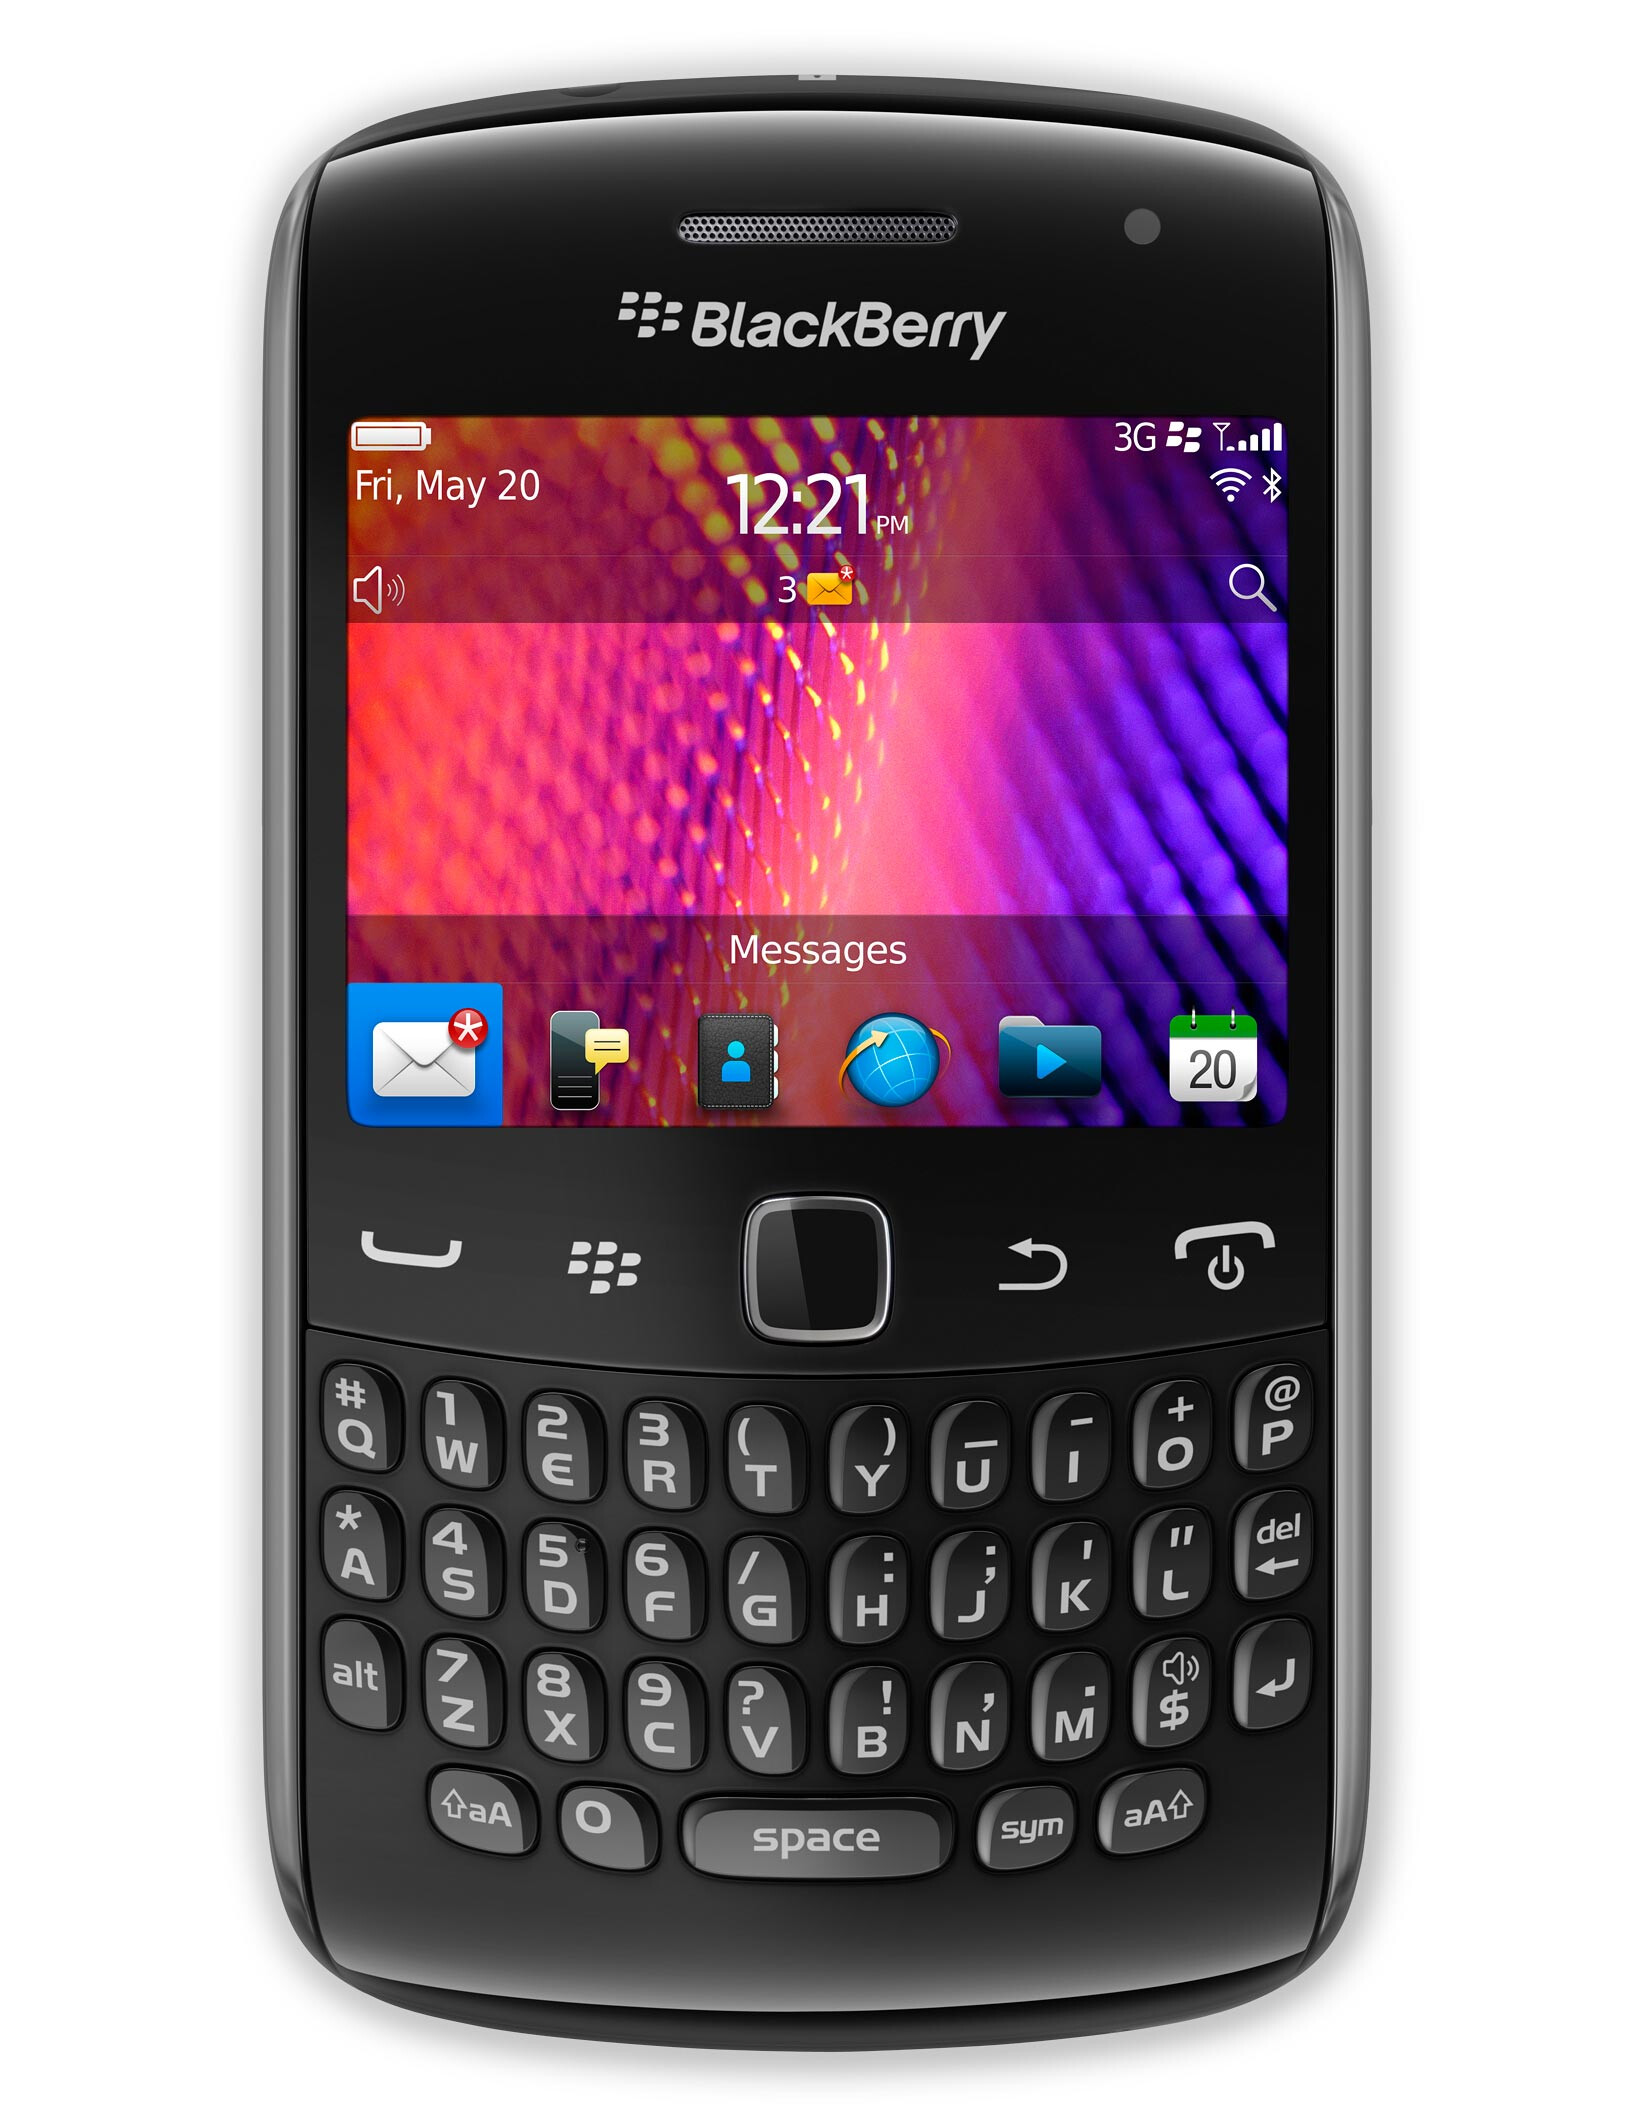 BlackBerry Curve 9360 User Guide and Spec